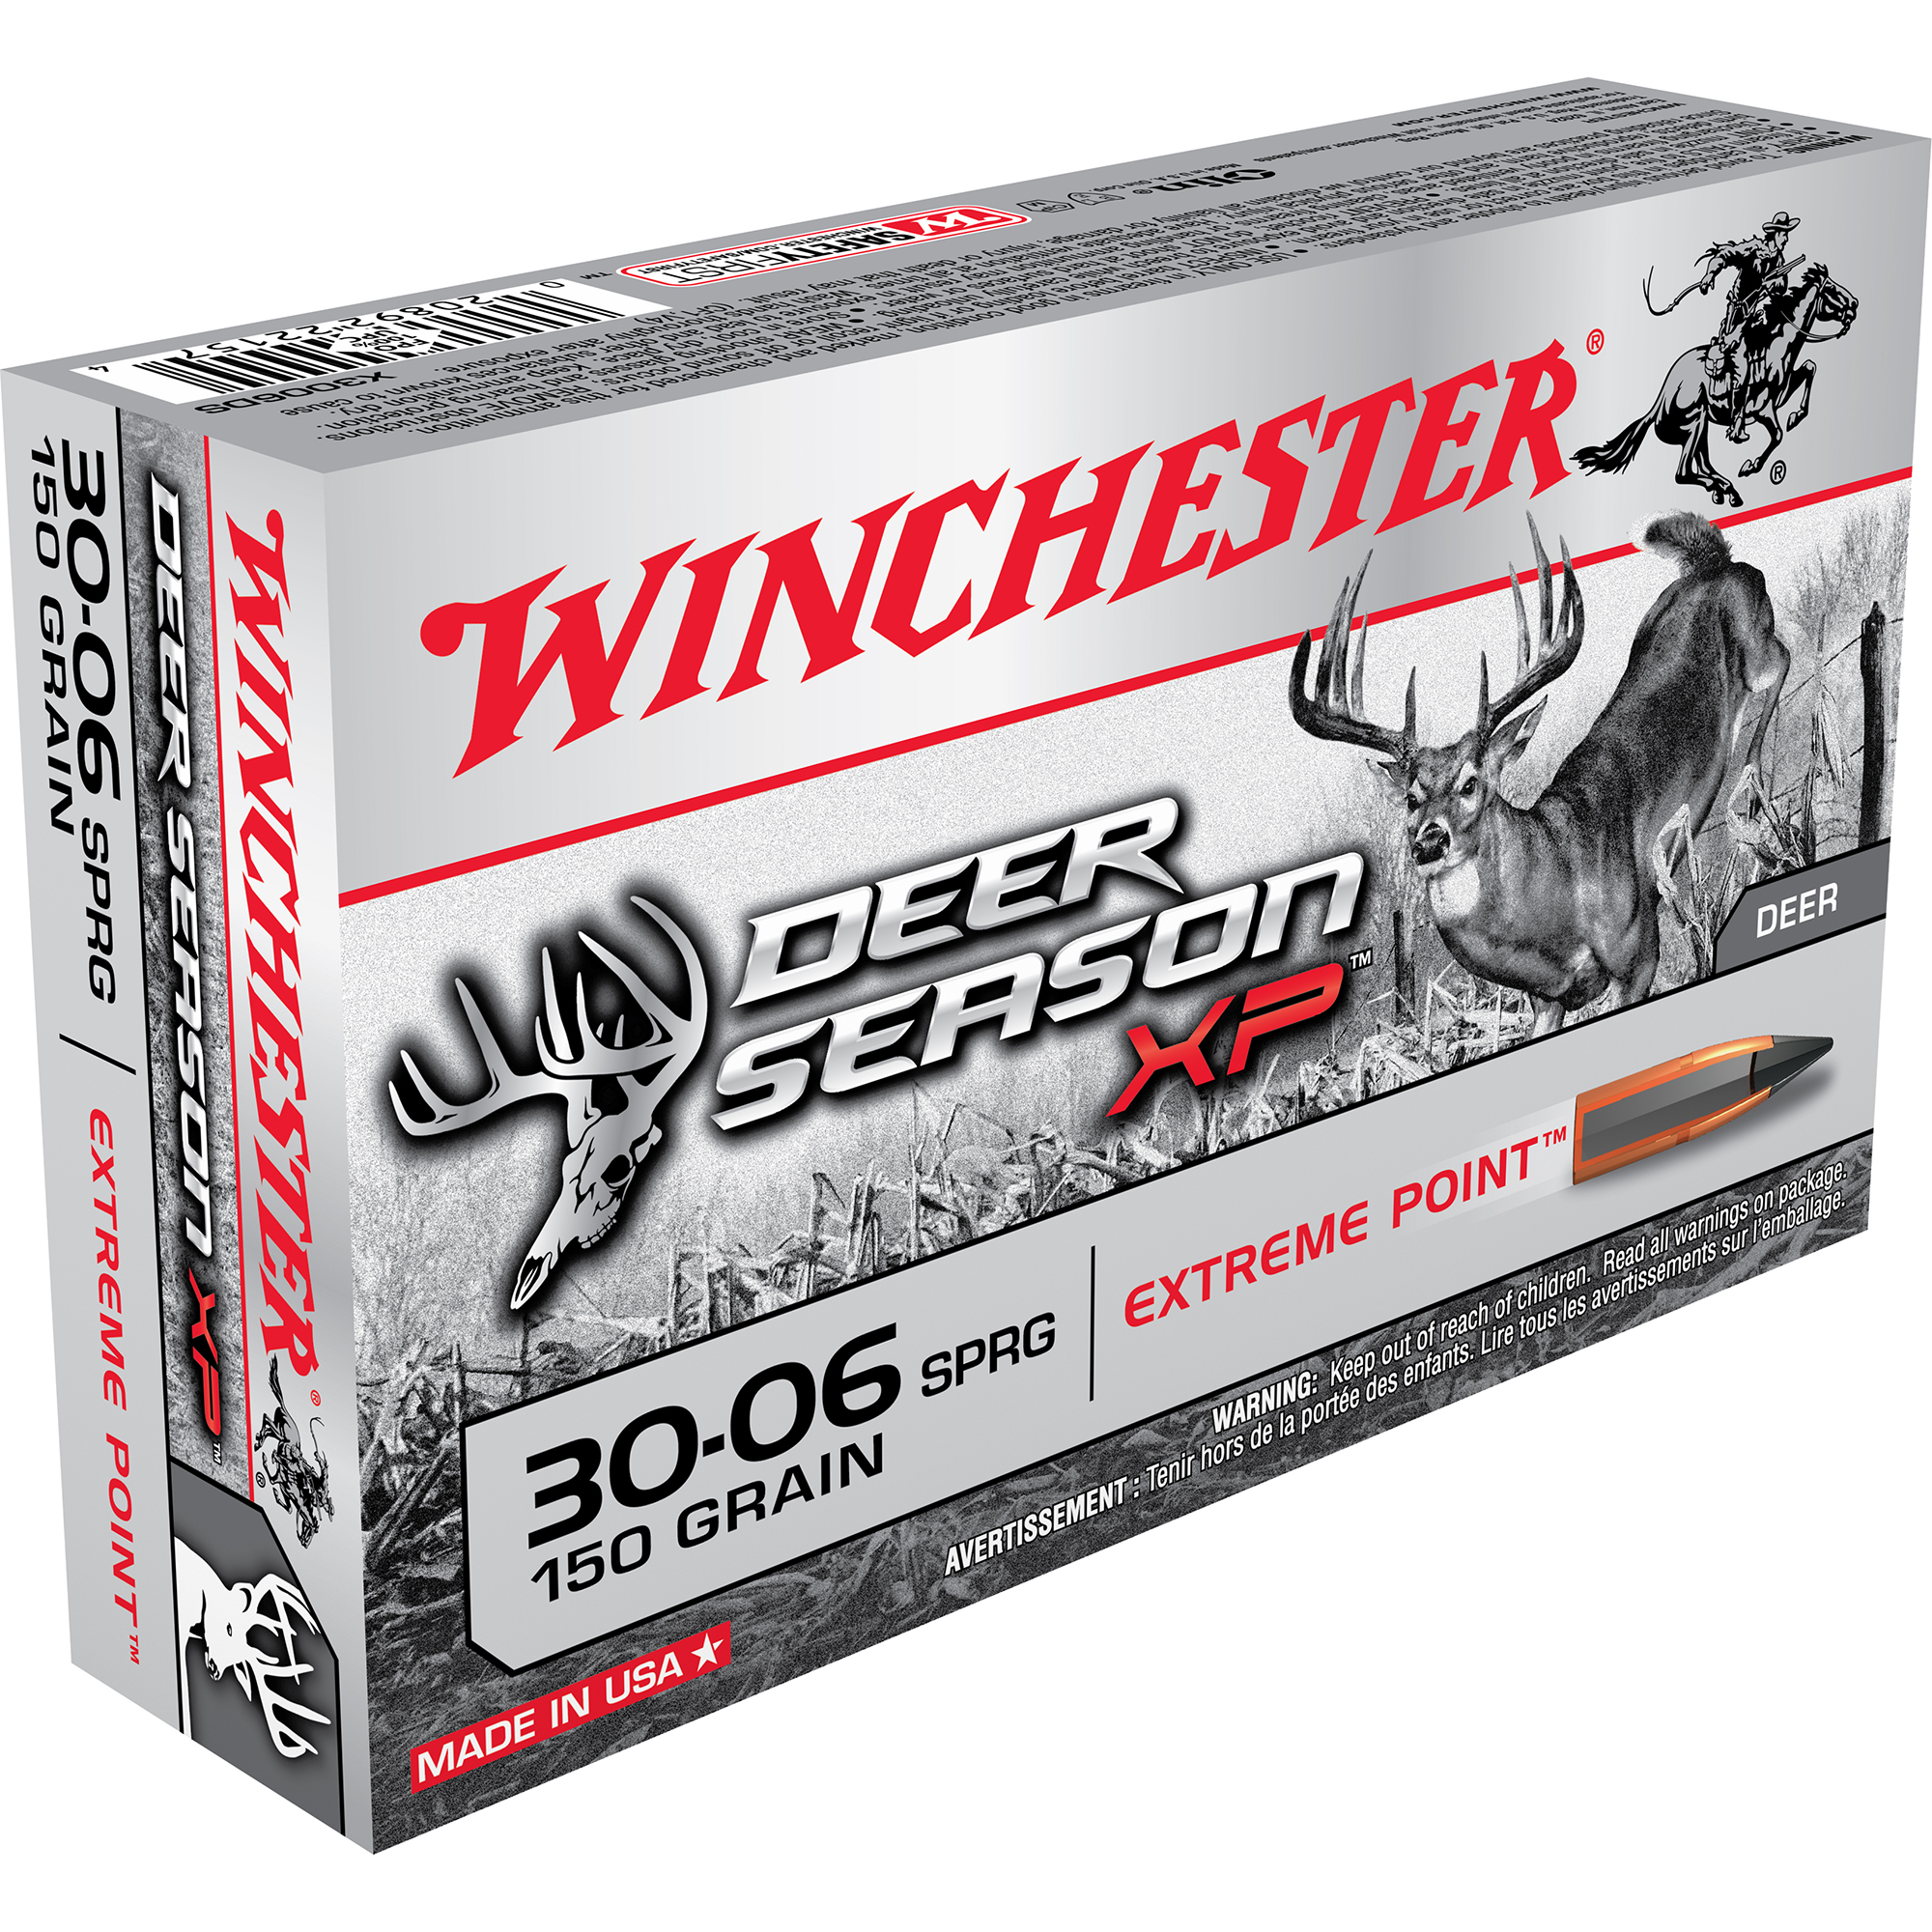 Winchester Deer Season XP Rifle Ammo, .30-06 Spring, 150-gr, Extreme Point